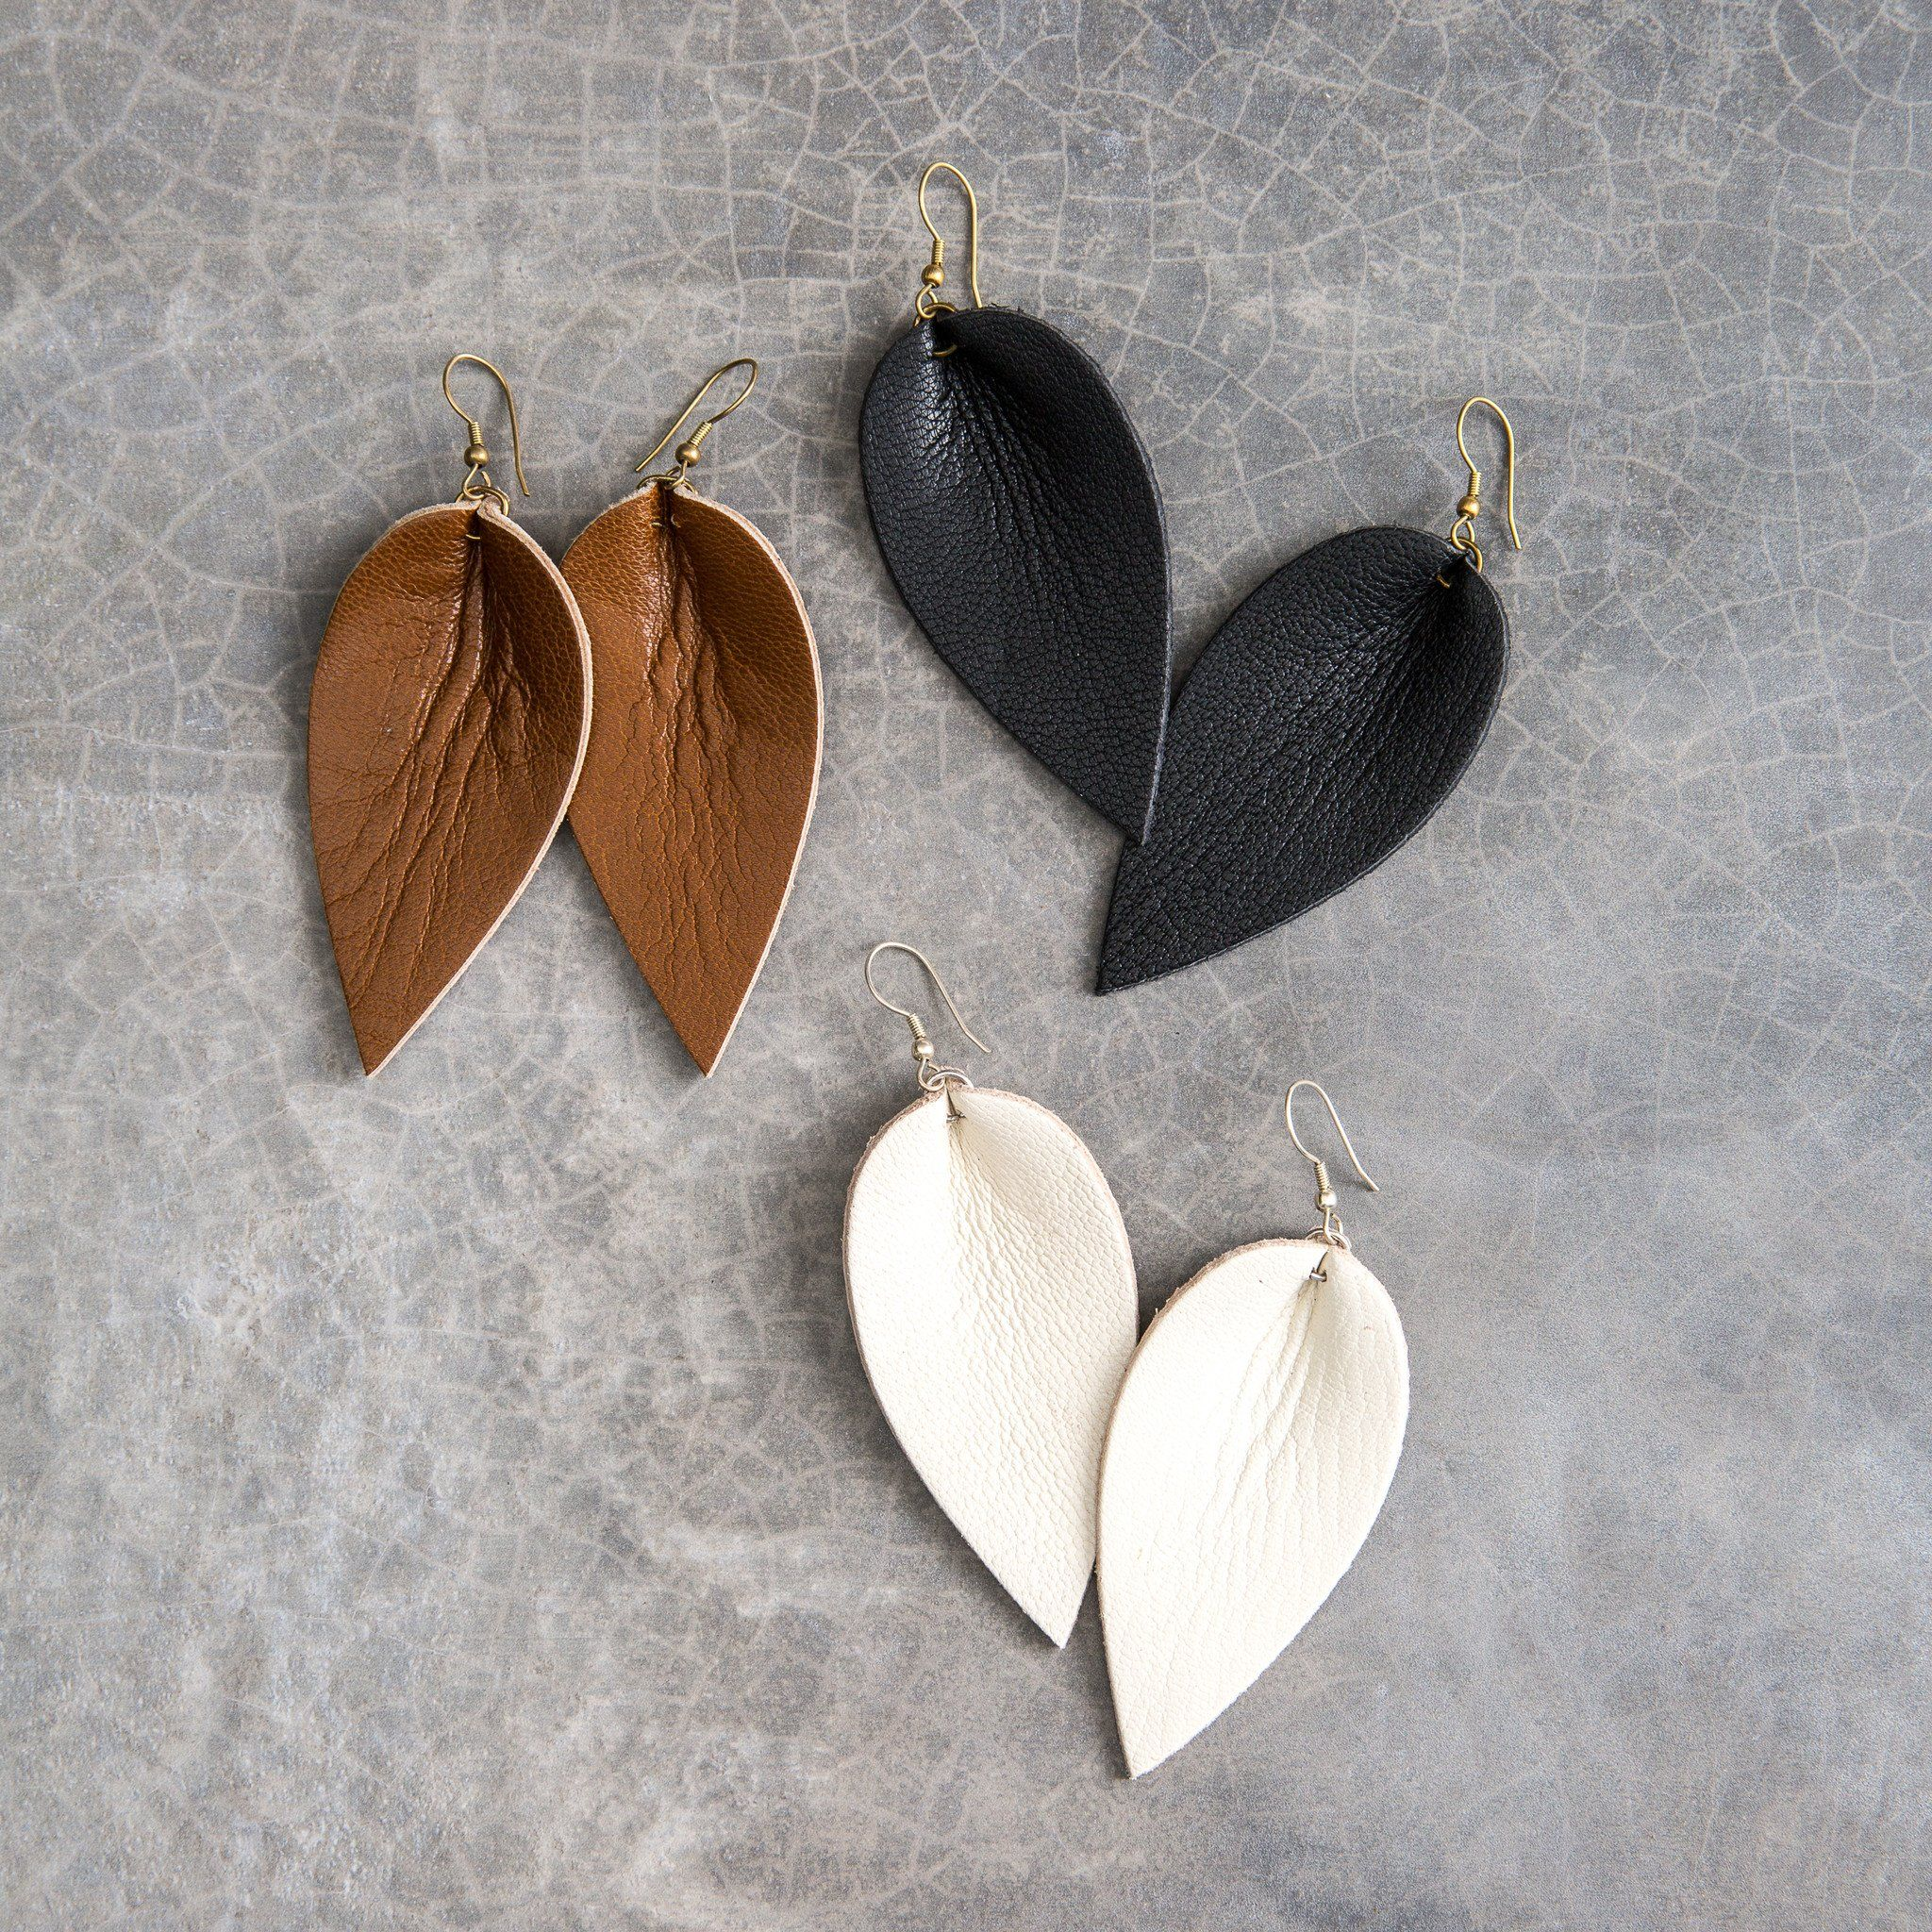 zia earrings | magnolia, leather earrings and leather jewelry